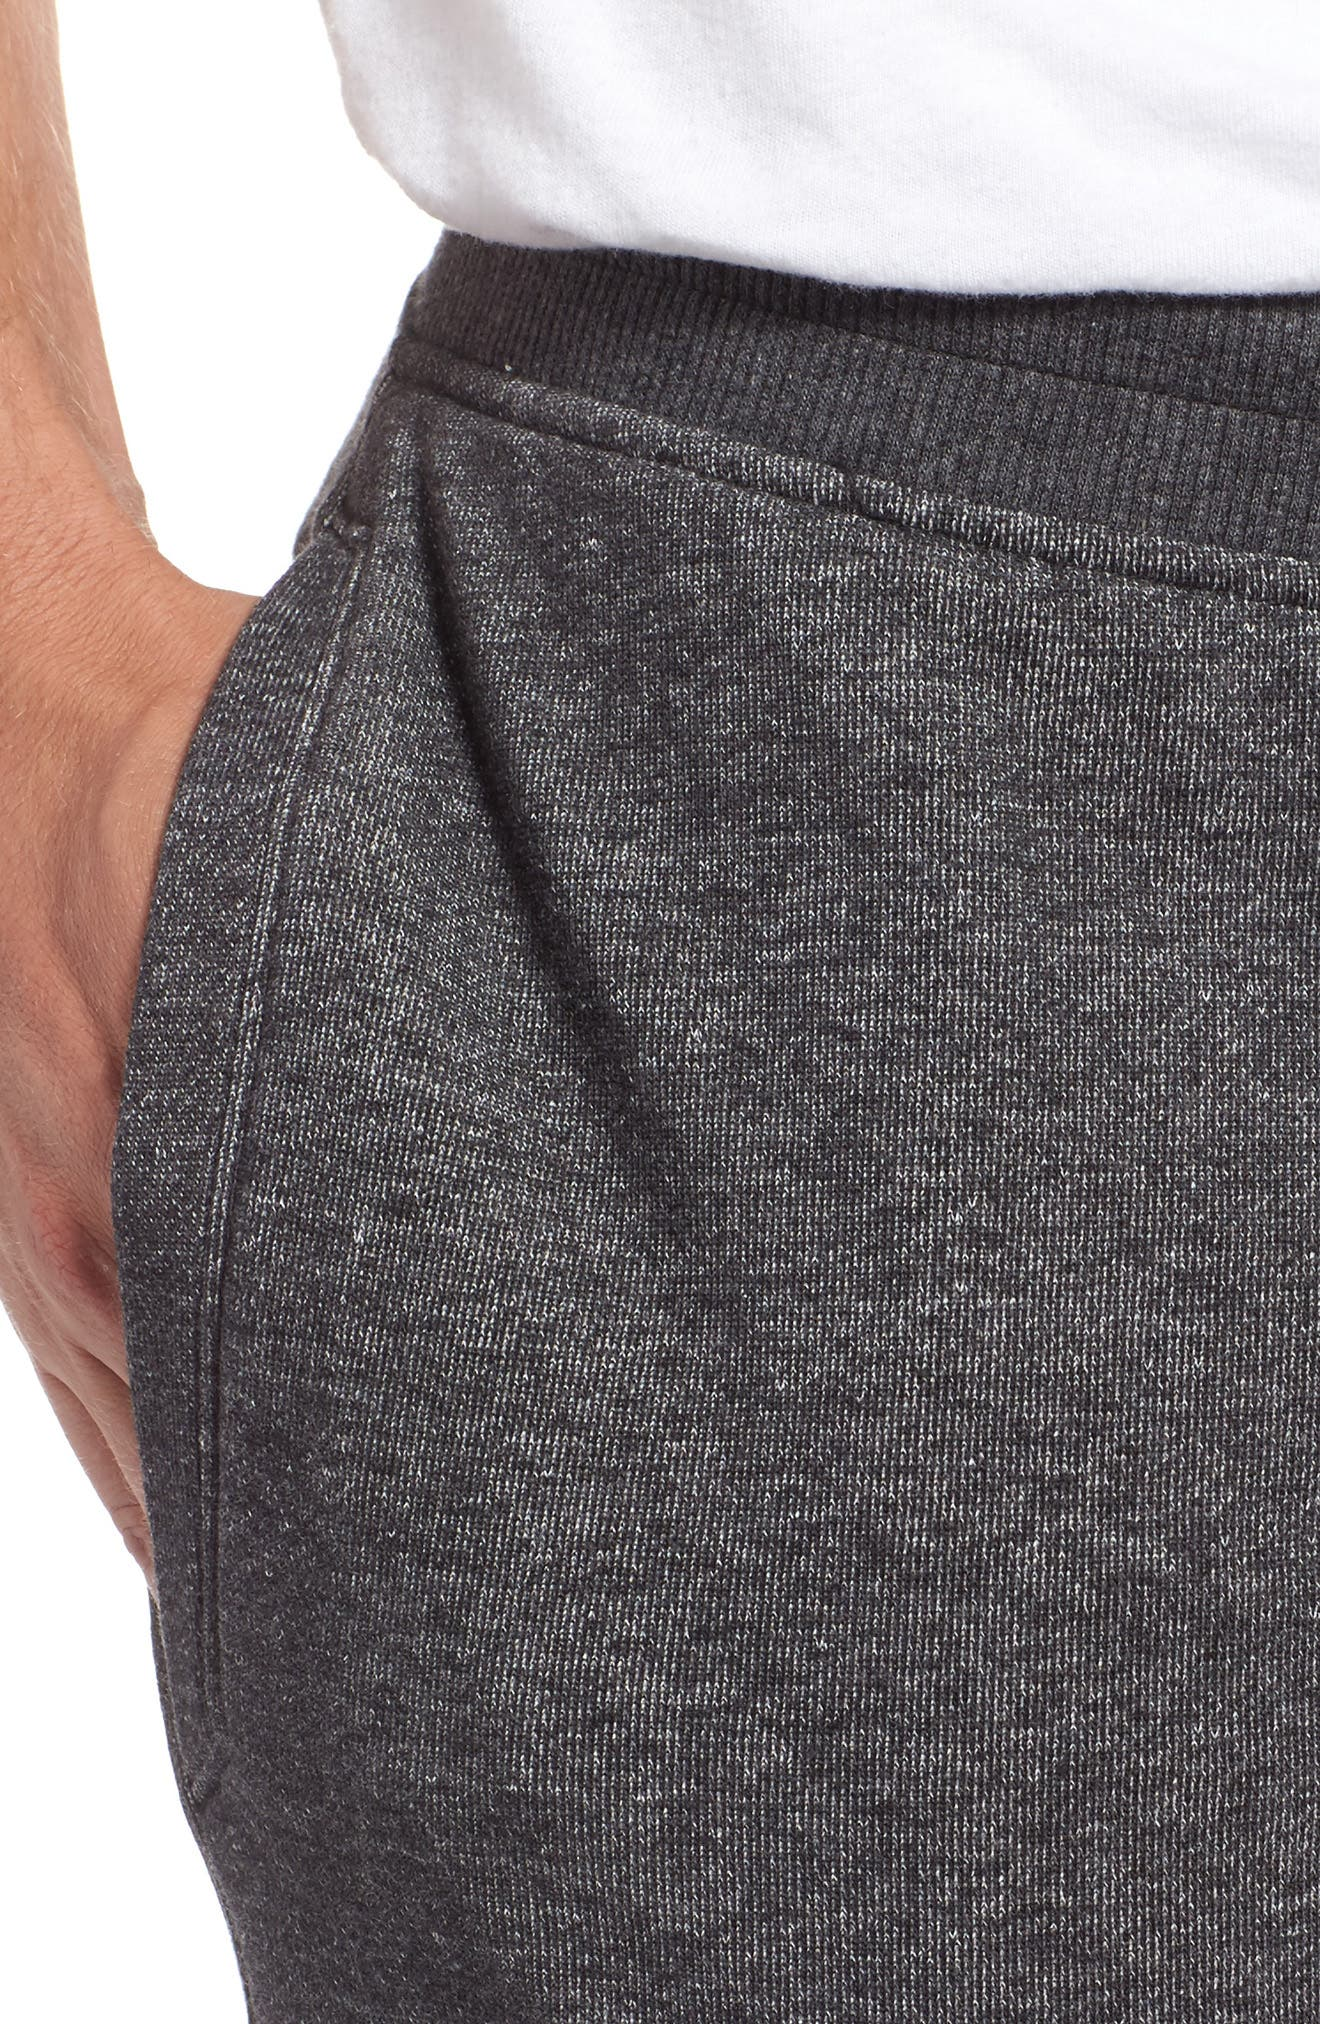 Terry Knit Athletic Shorts,                             Alternate thumbnail 4, color,                             020